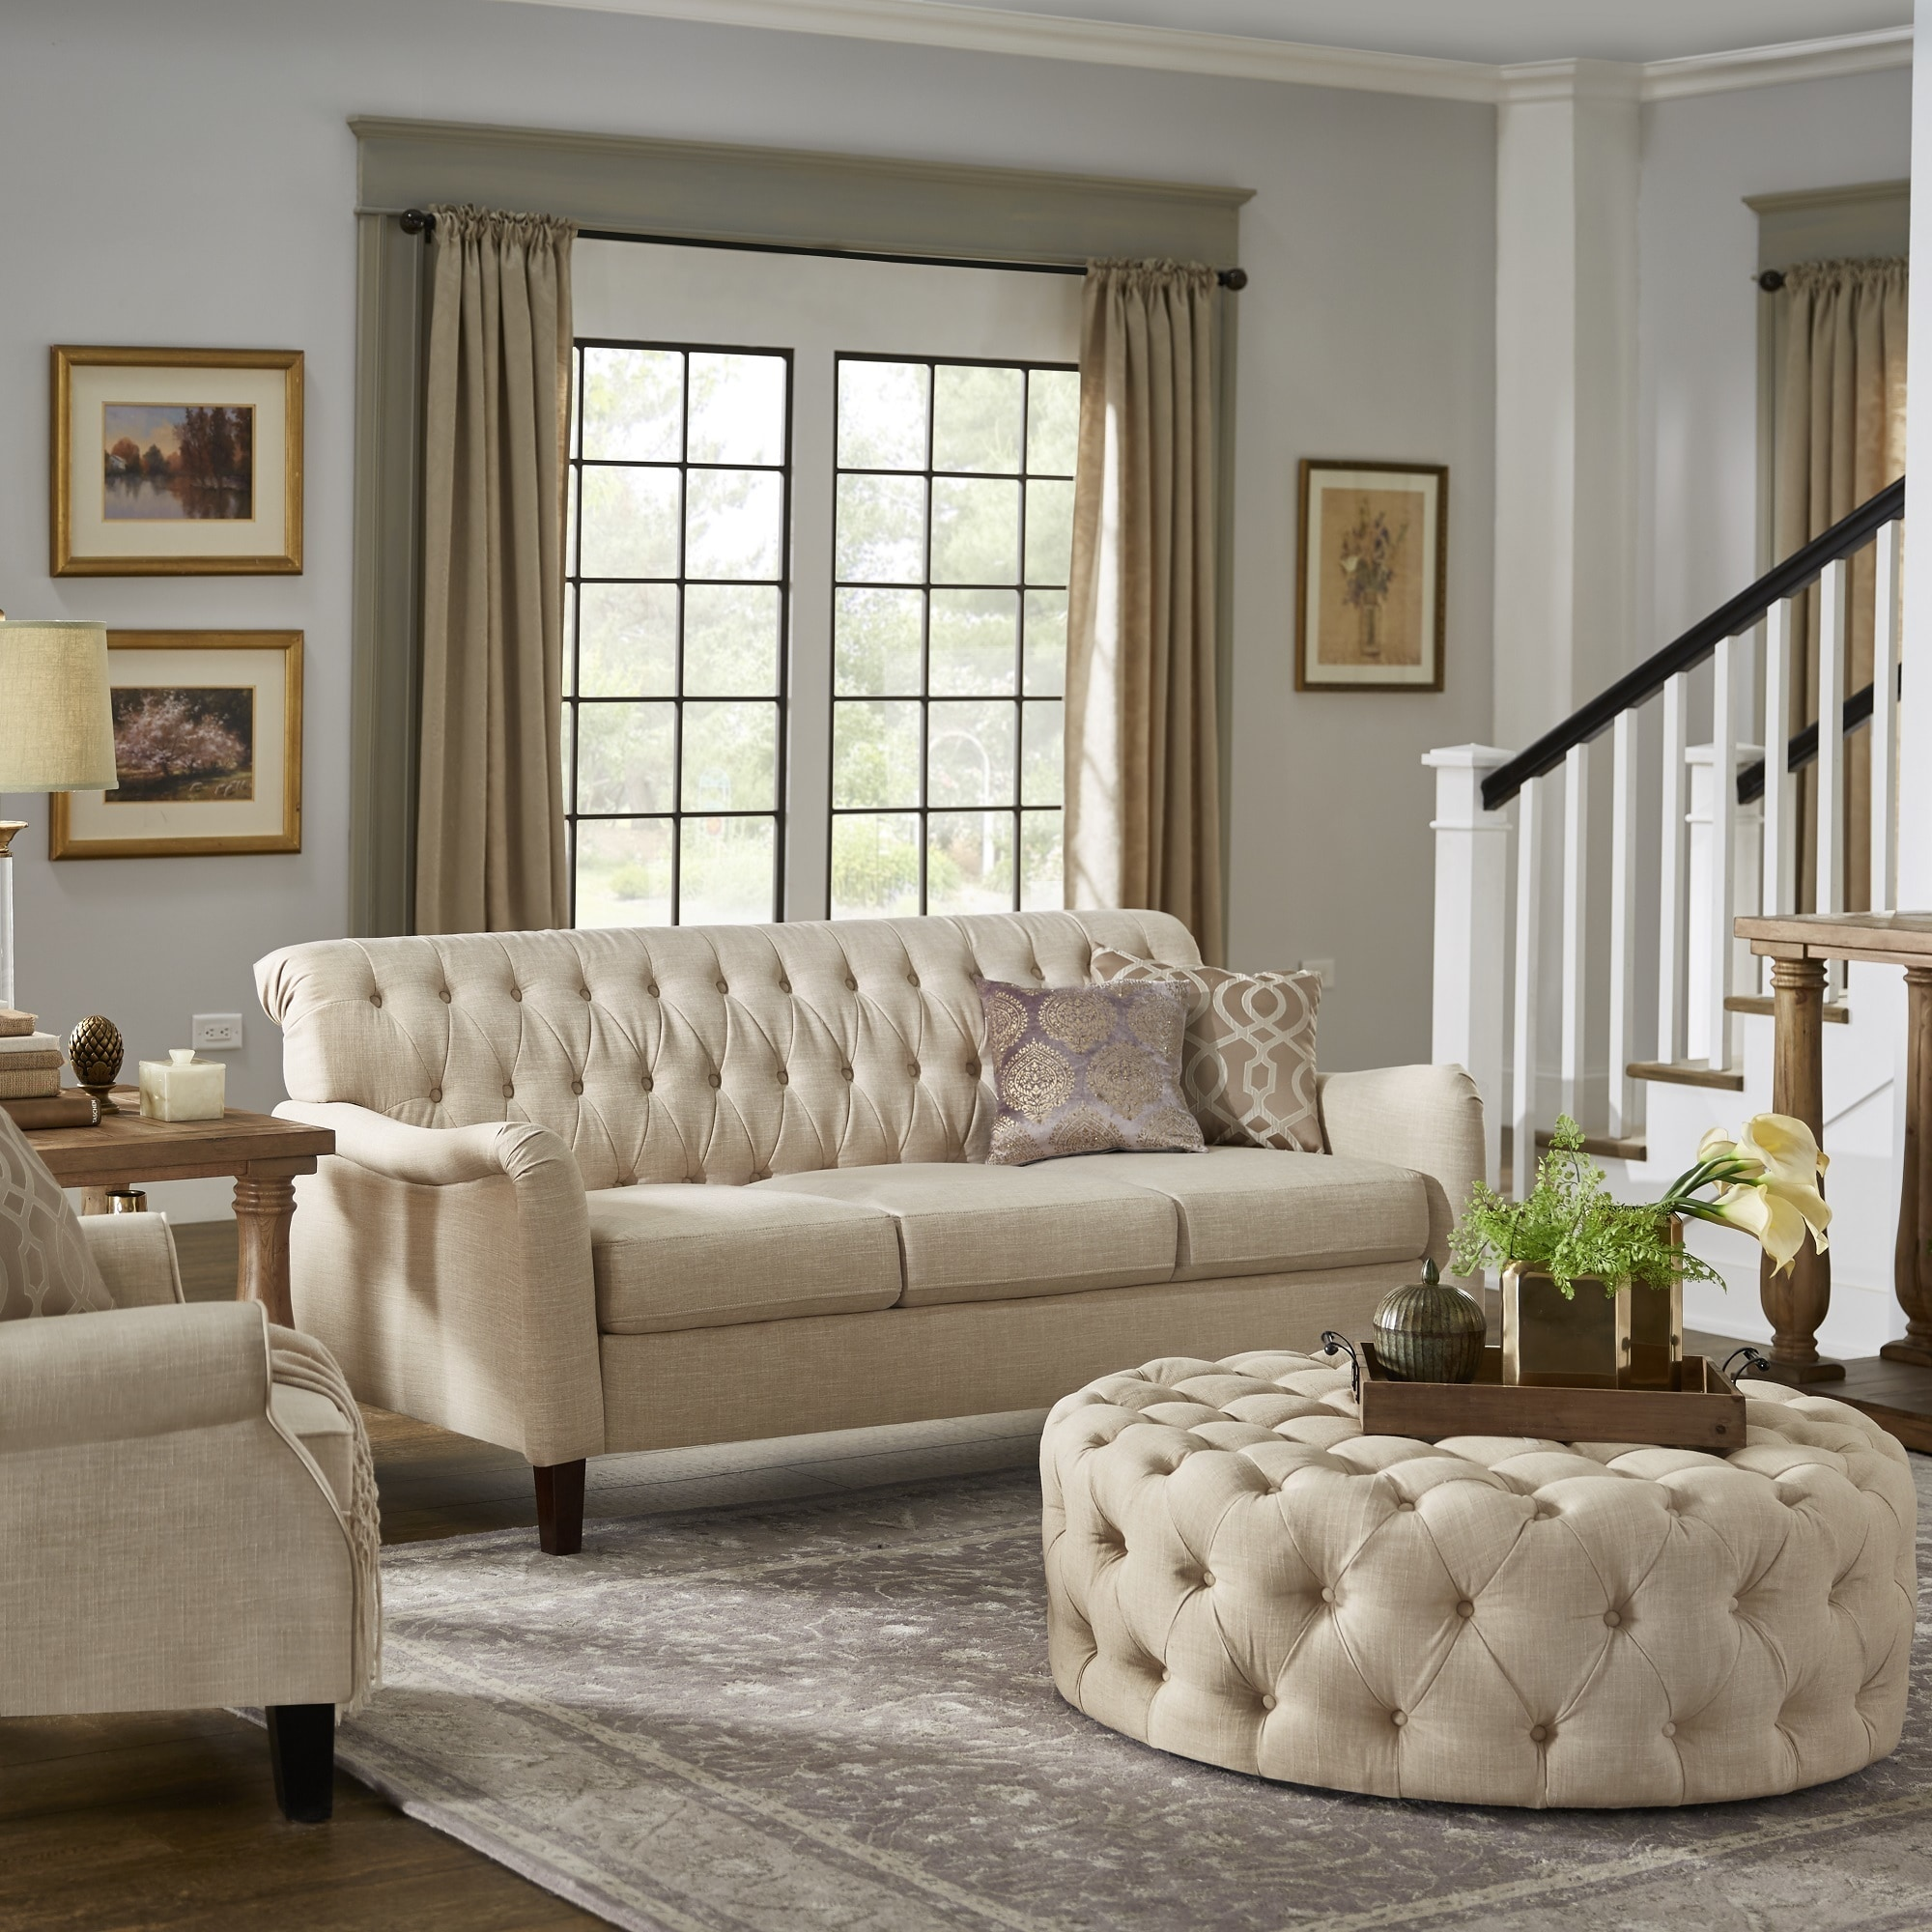 Tilda Beige Tufted Back Sofa With English Arms By Inspire Q Clic